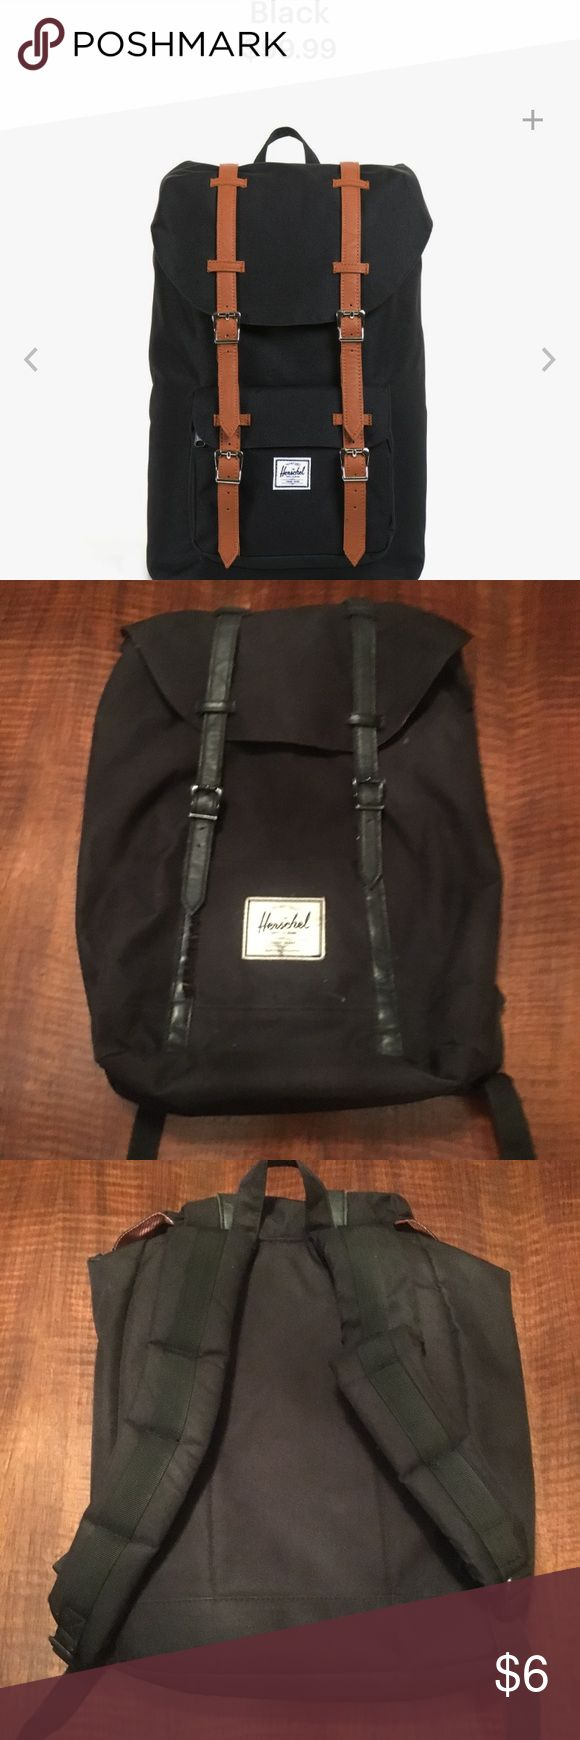 Black Herschel backpack with black straps This backpack is in a used condition and has a rip in the front pocket that needs to be sewn up. This is why the price is so low! This is an amazing backpack with an extremely protective laptop case. If you are up for fixing the front pocket this is an amazing deal 😊 *the straps are black not brown like website photo* Herschel Supply Company Bags Backpacks